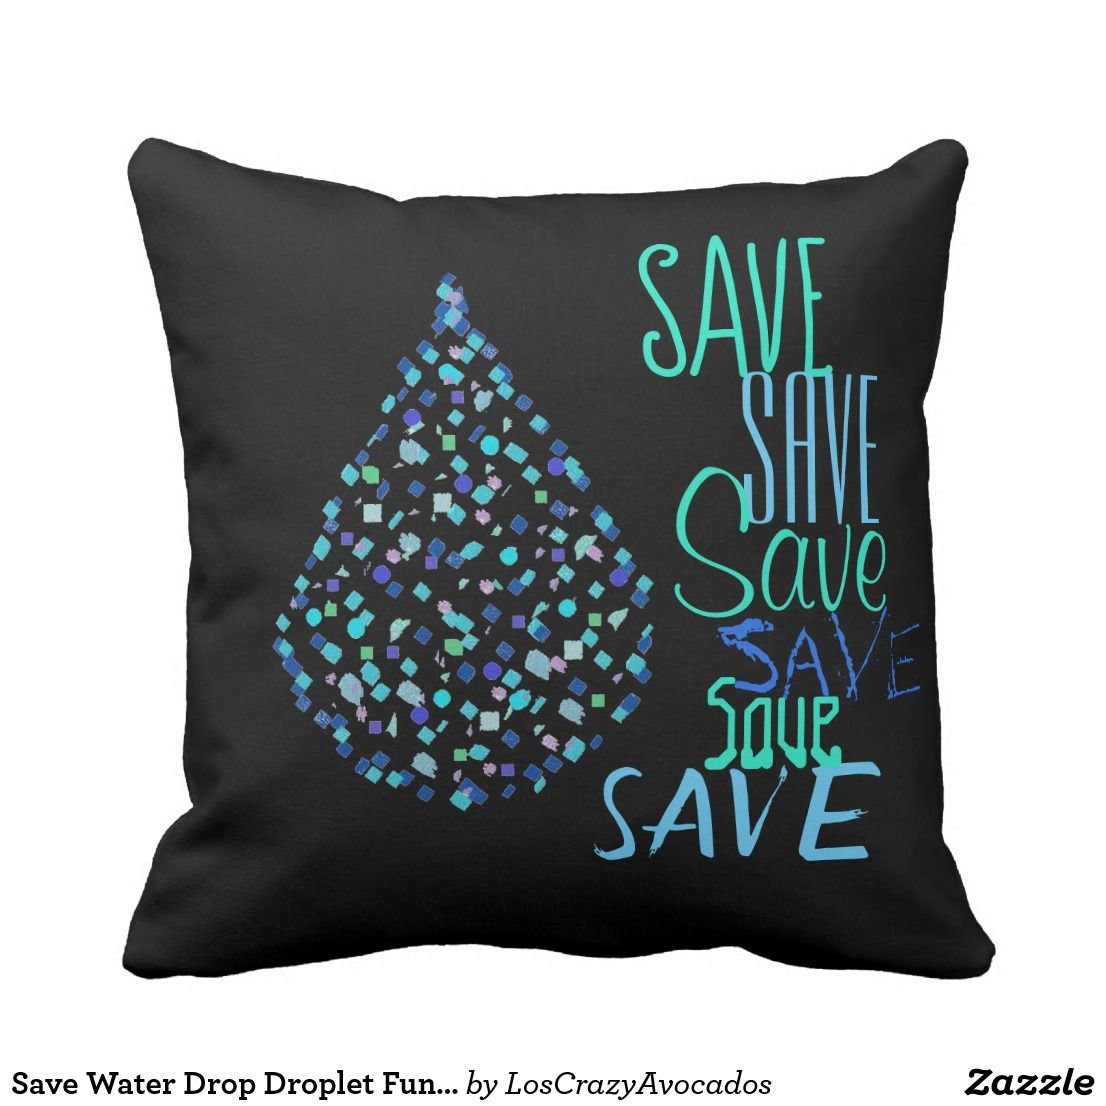 Save Water Drop Droplet Funky Throw Pillow Cushion | Save water ...